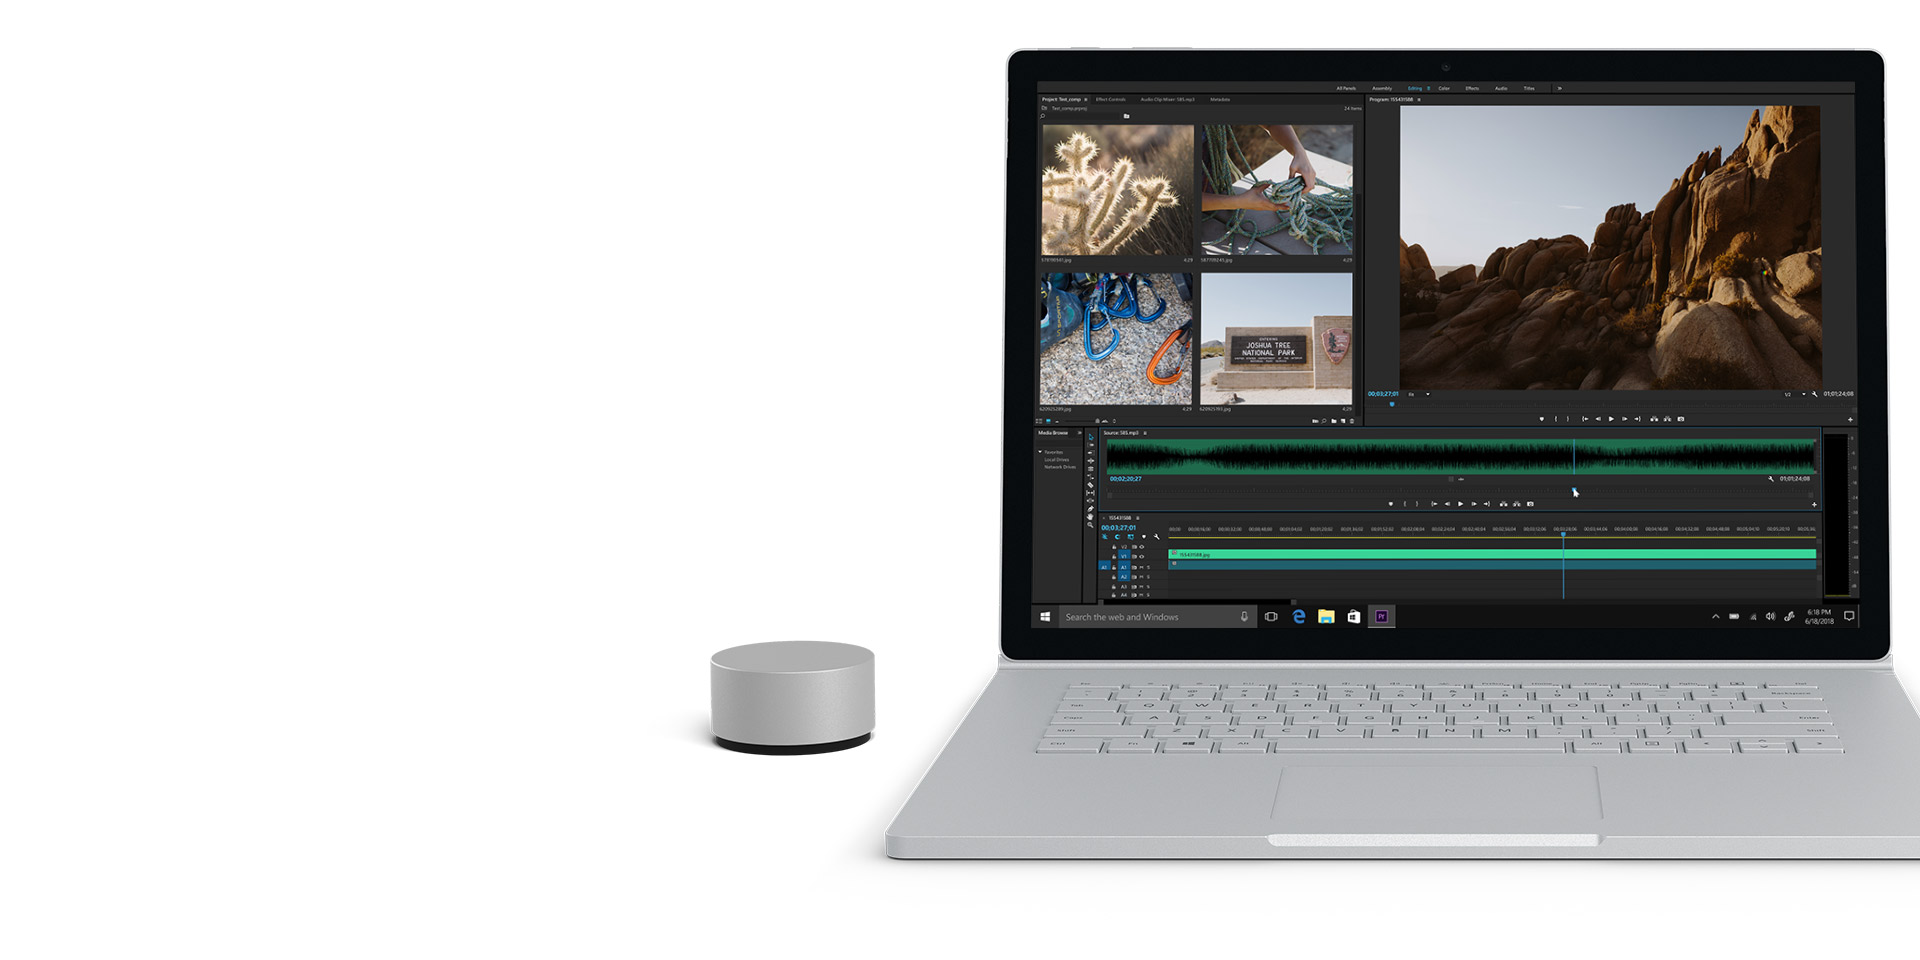 Surface Book 2-Display mit geöffnetem Adobe Premiere Pro